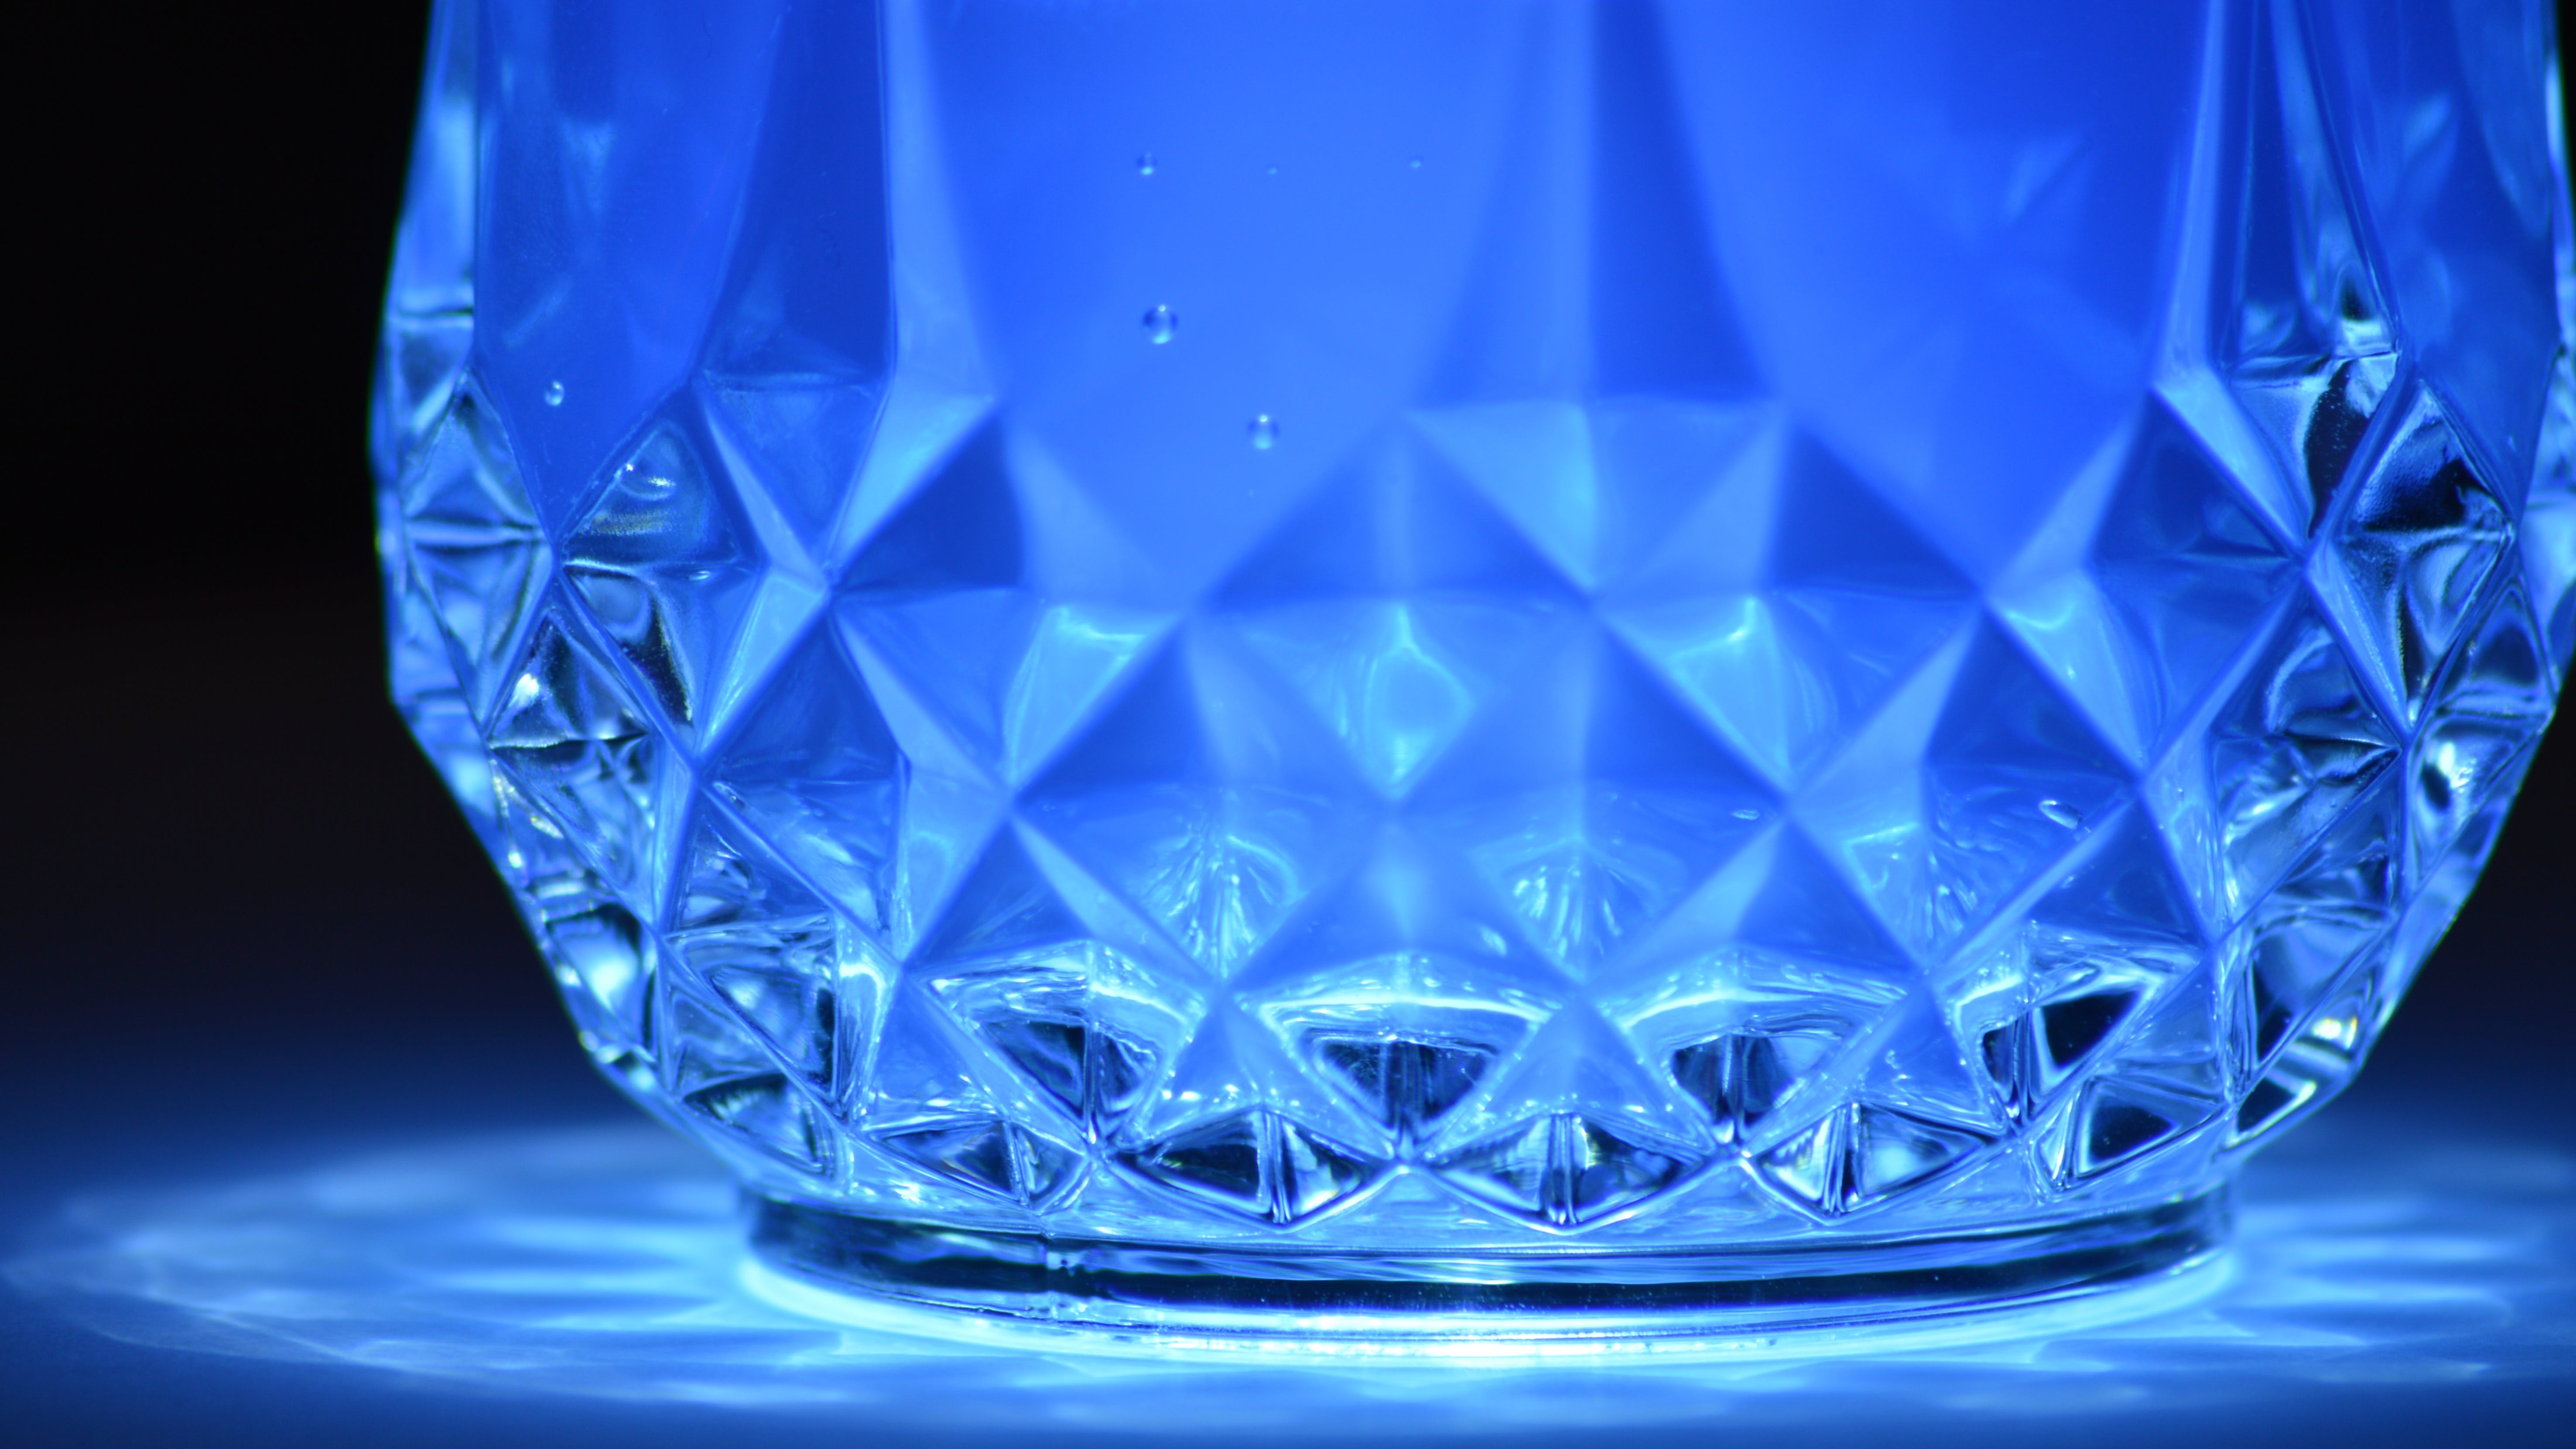 Close-up of Blue Reflection